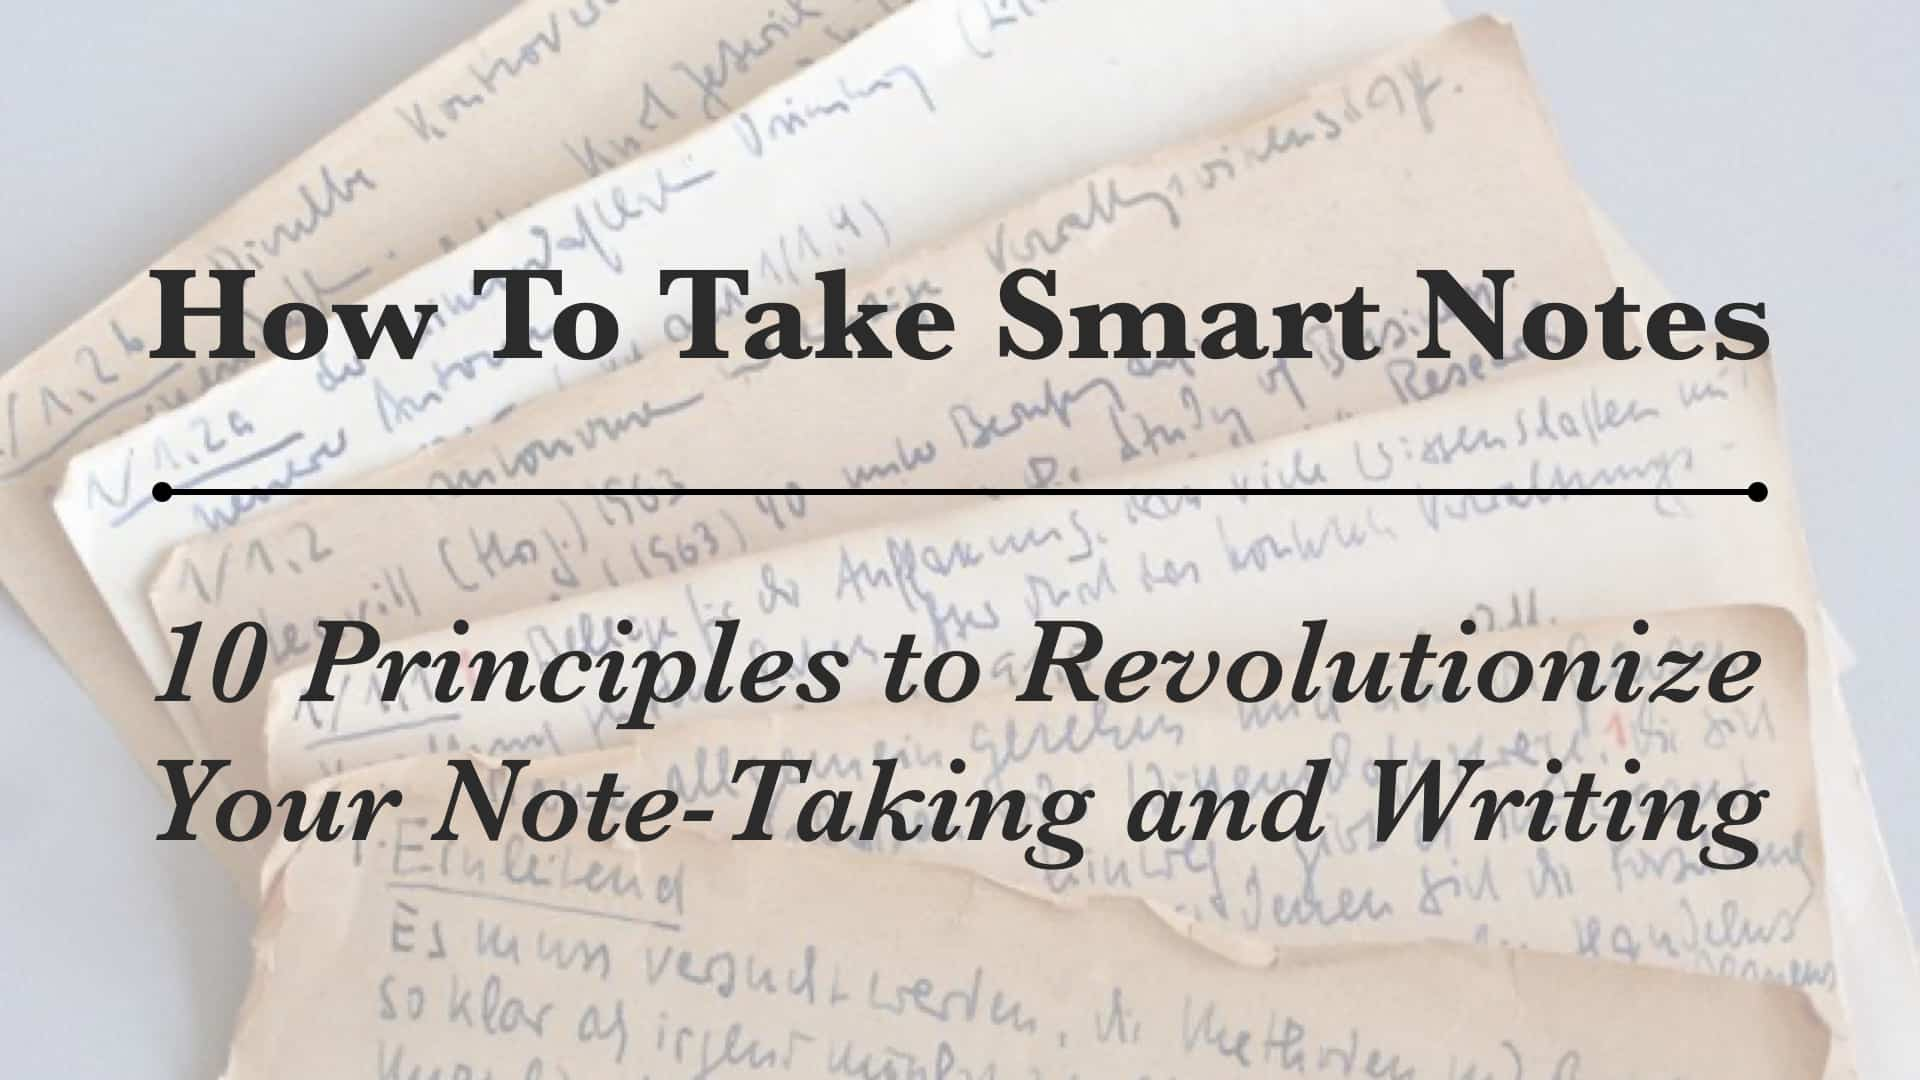 How To Take Smart Notes: 22 Principles to Revolutionize Your Note